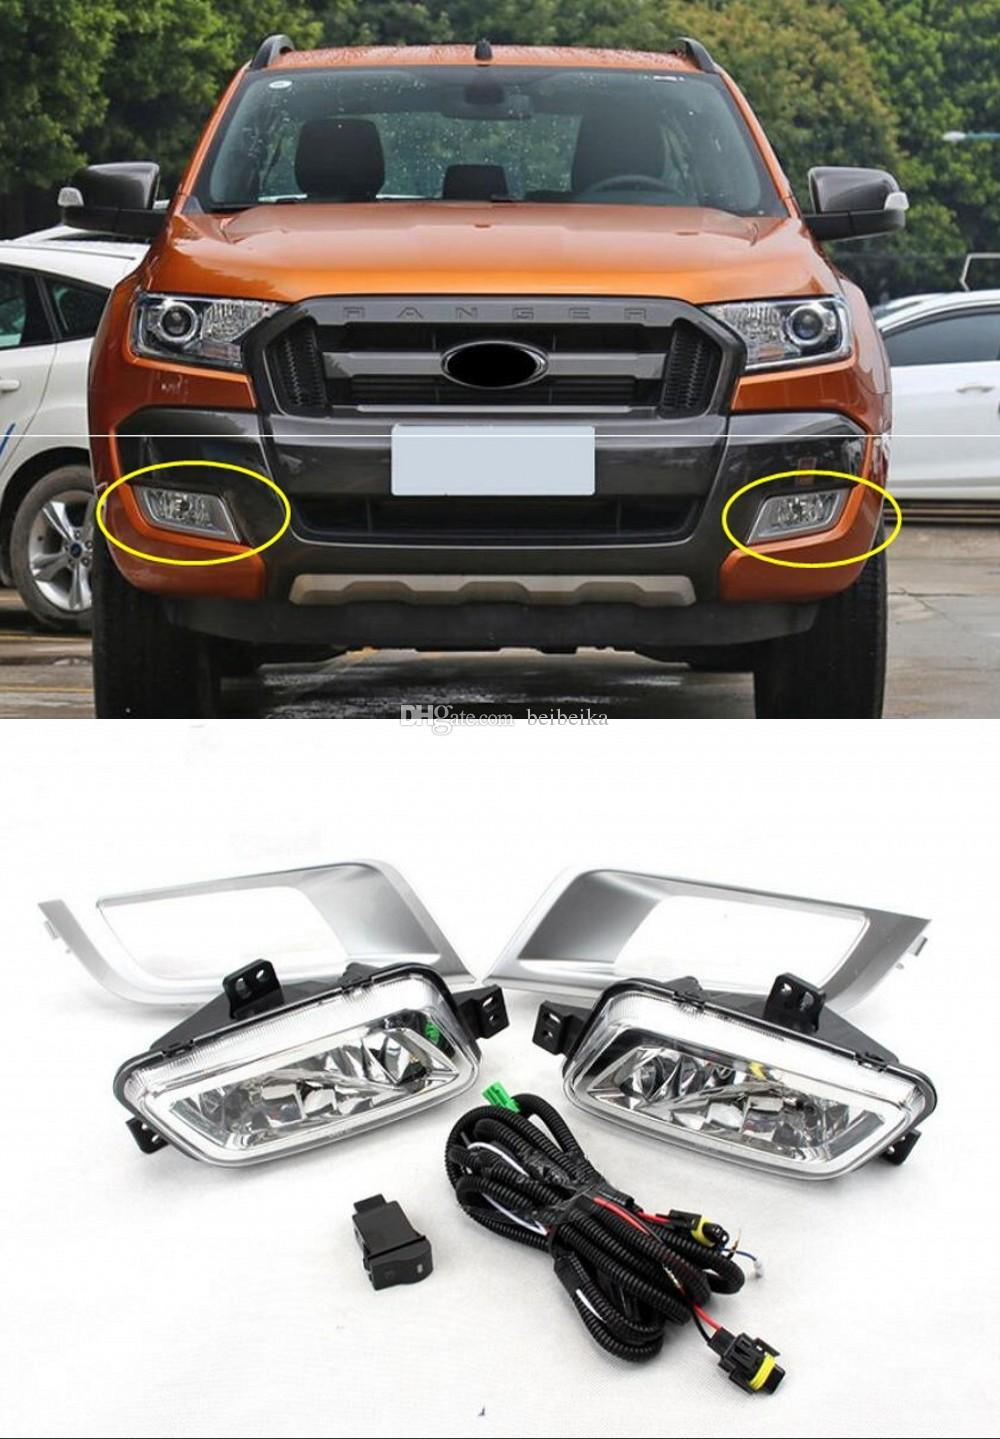 Car OEM Front Bumper Fog Light Lamp Set With Wiring & Switch For Ford Wiring Fog Lamp on fog lamp socket, fog lamp relay, fog lamp lens, fog lamp housing, fog lamp switches, fog lamp bulbs, fog lamp lights, fog lamp assembly, fog lamp brackets, fog lamp connector, fog lamp mounting, fog lamp plug,